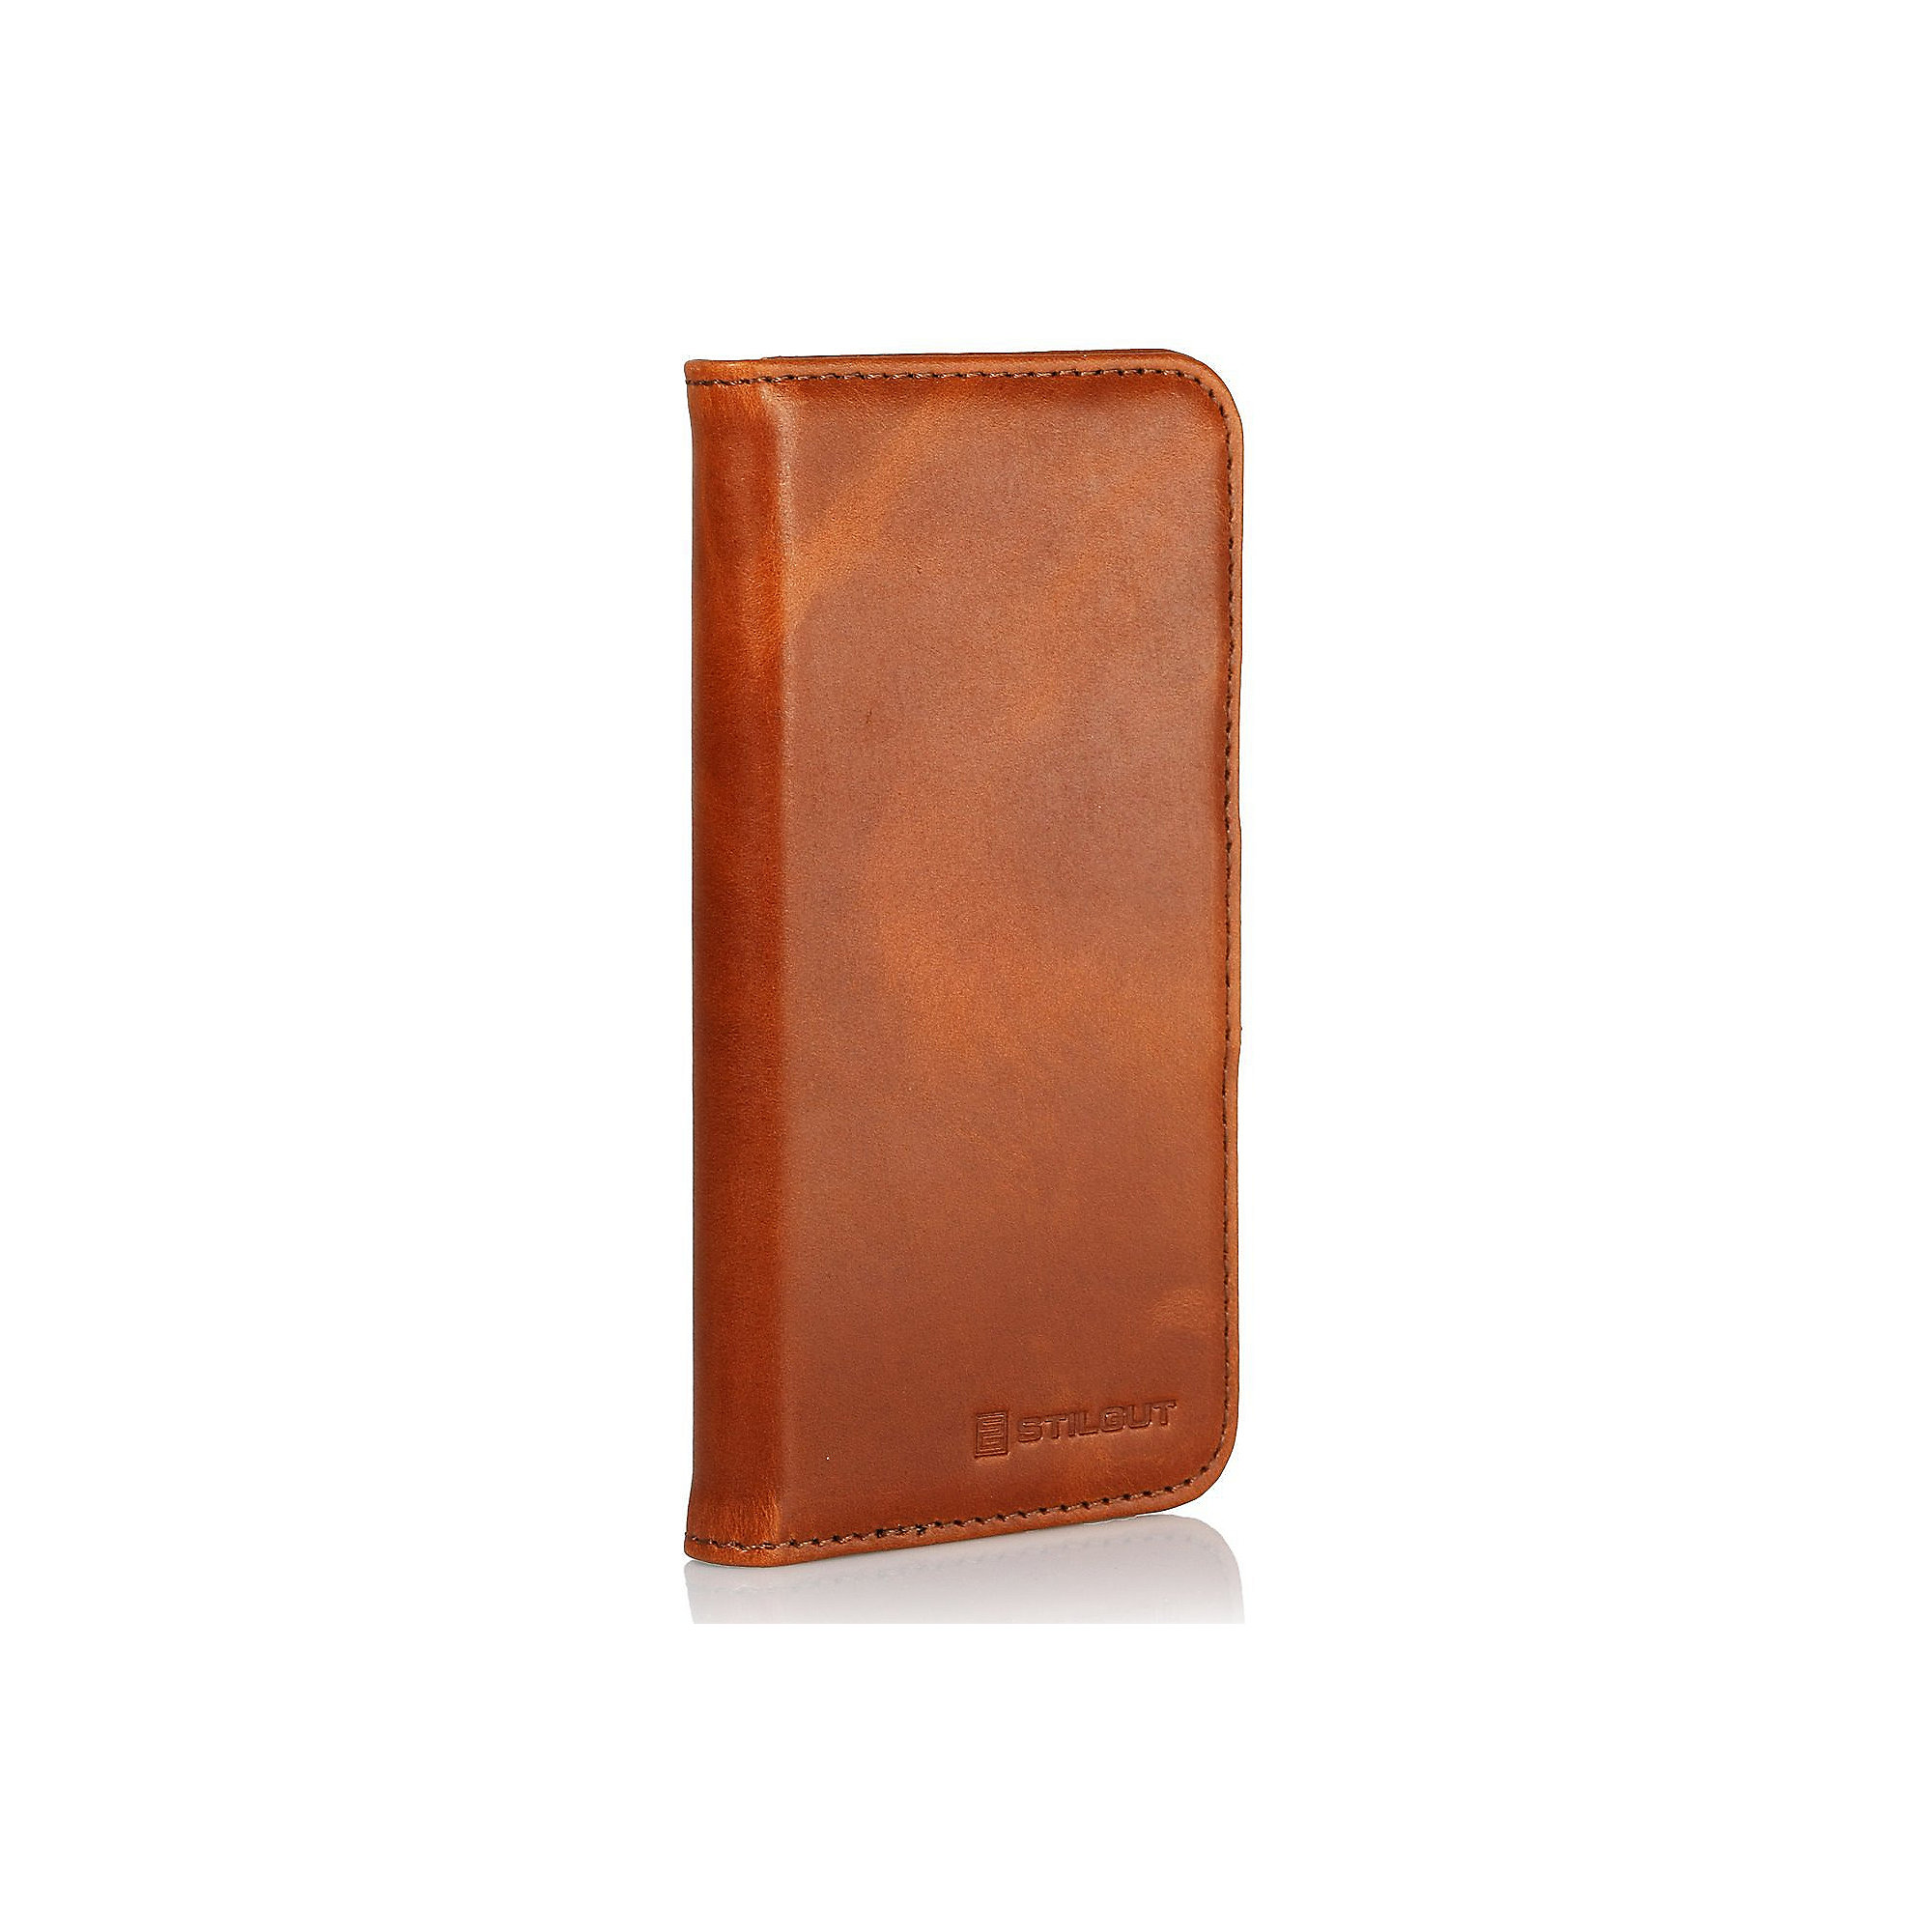 "StilGut ""Talis"" Book Type Case V2 Ledertasche für iPhone 5 cognac braun"